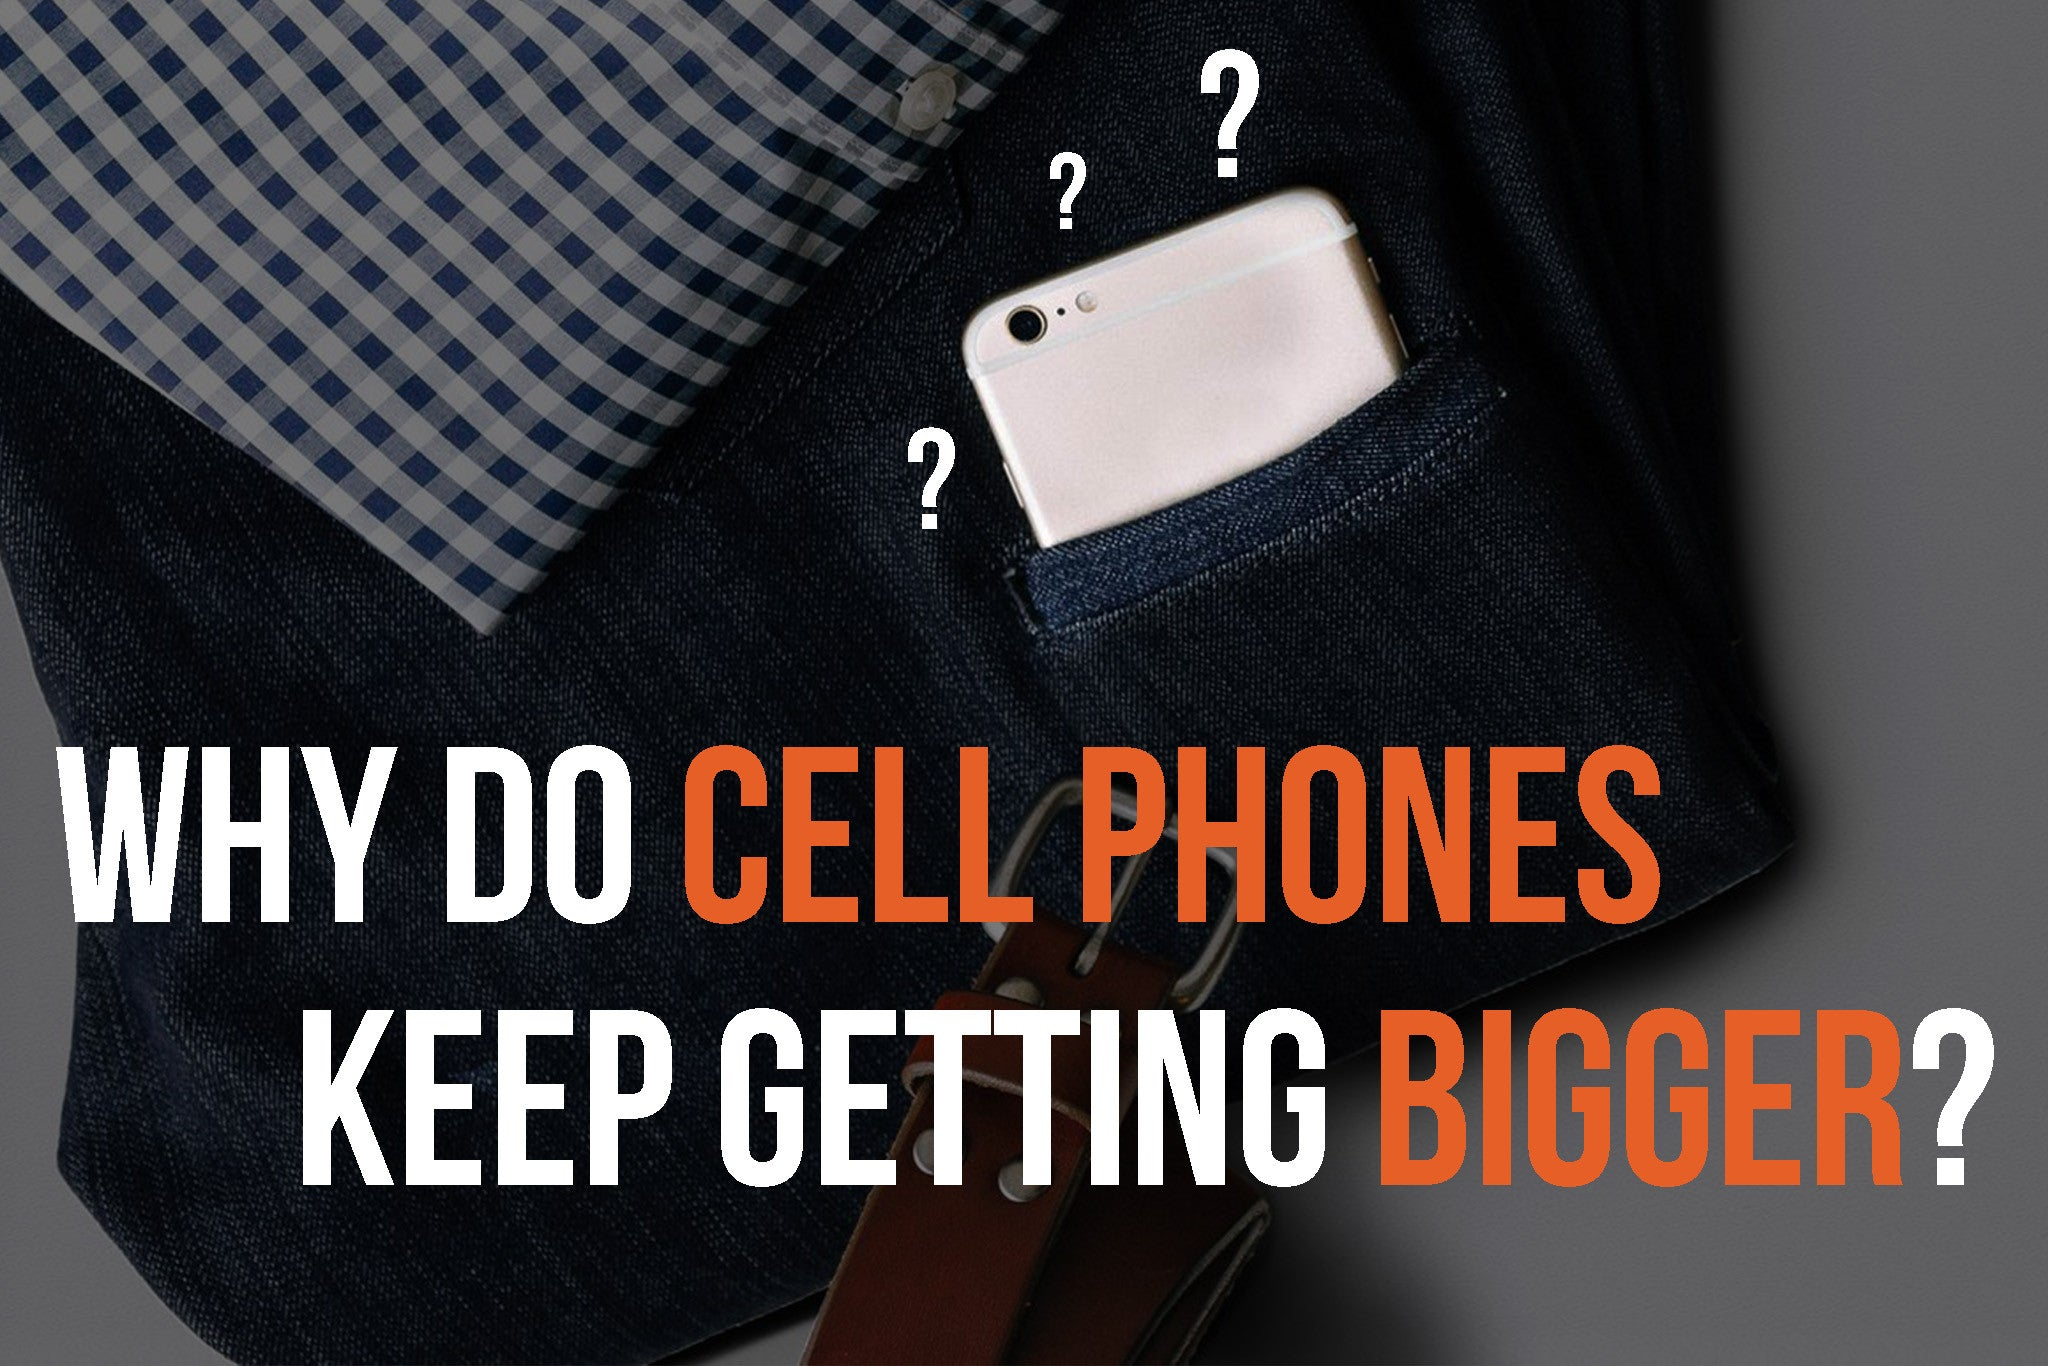 Why do Cell Phones Keep Getting Bigger?